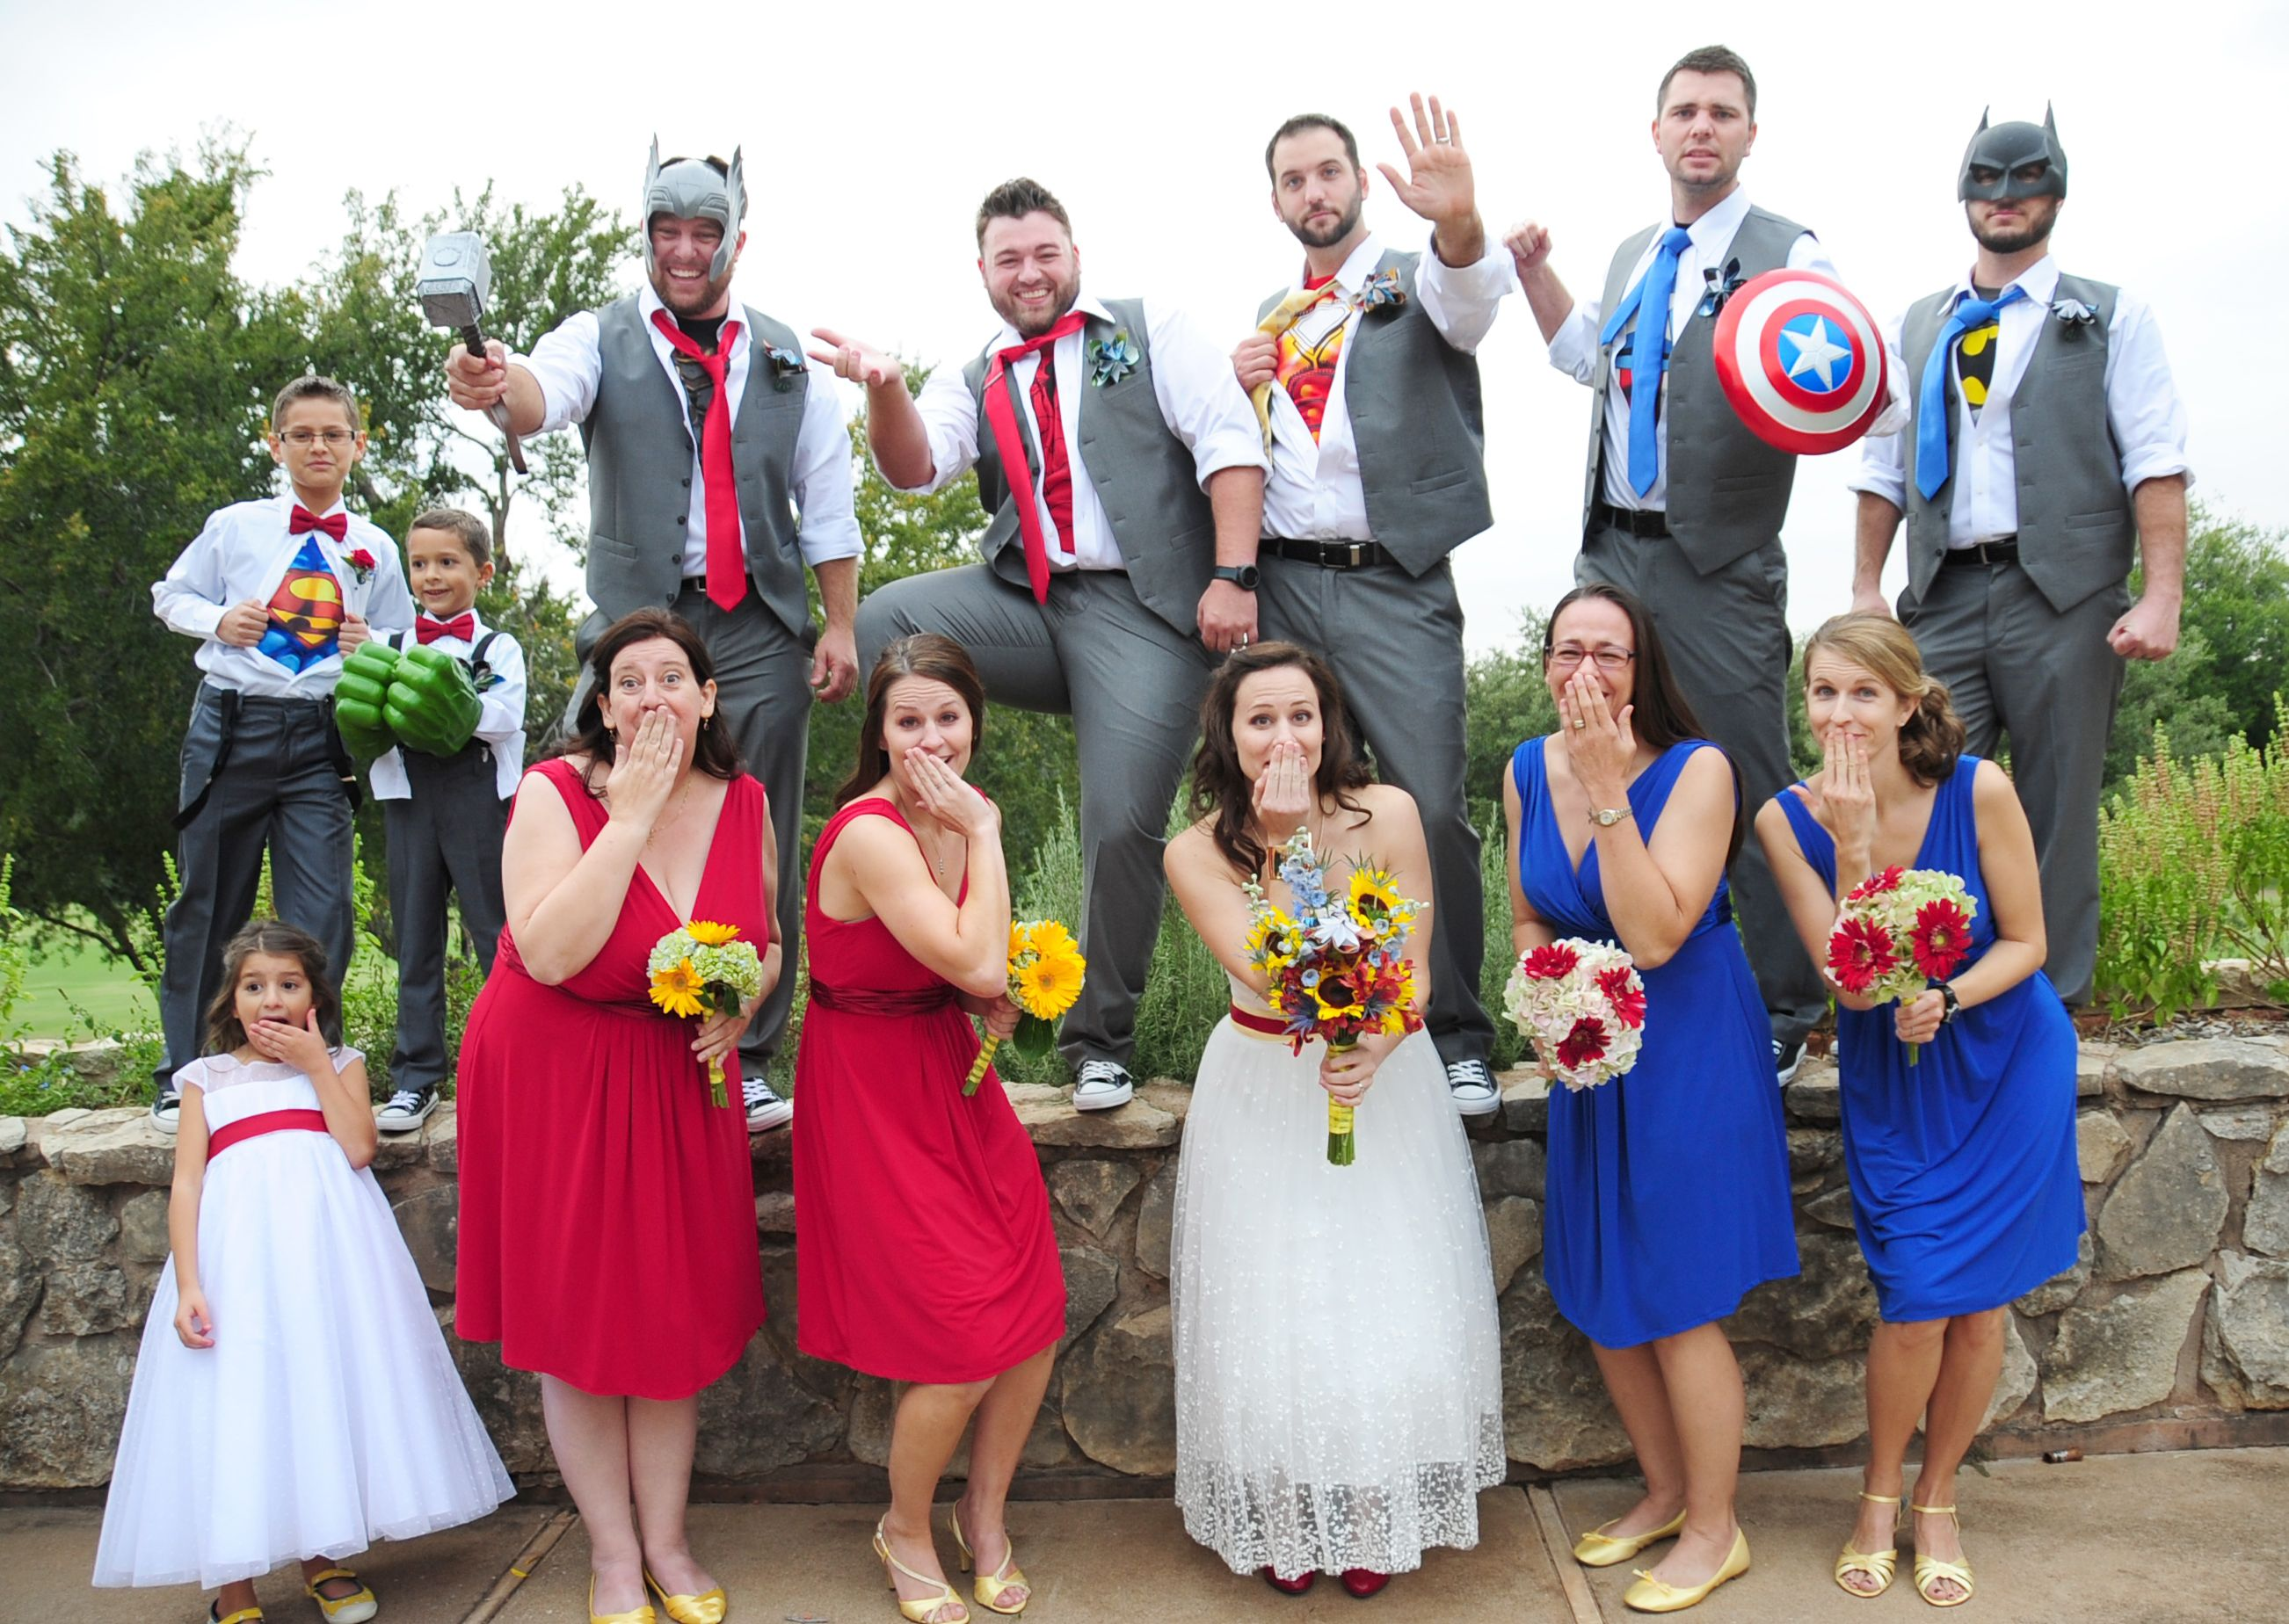 Superhero wedding party with props Everyone had so much fun The